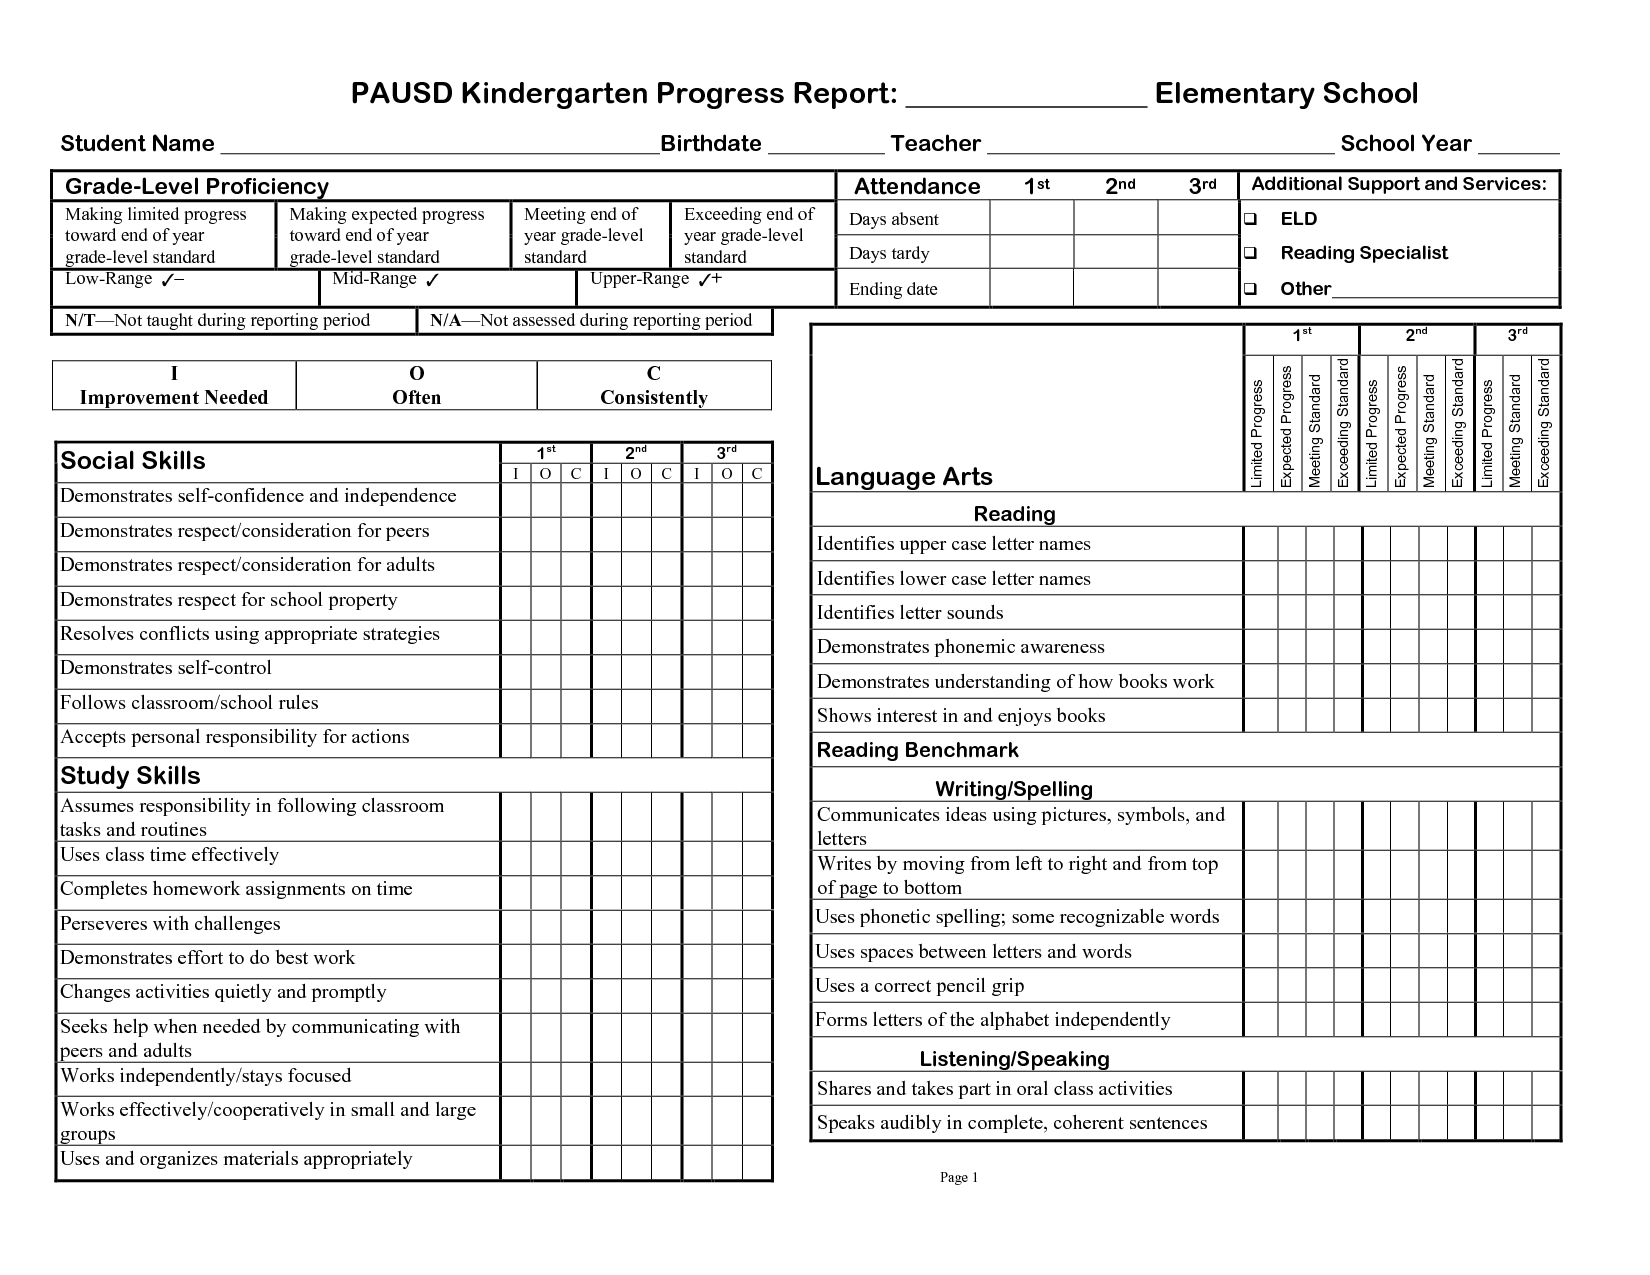 Elegant 3rd Gradeprogress Report Template | PAUSD Kindergarten Progress Report  Elementary School Idea Progress Report Template For Students